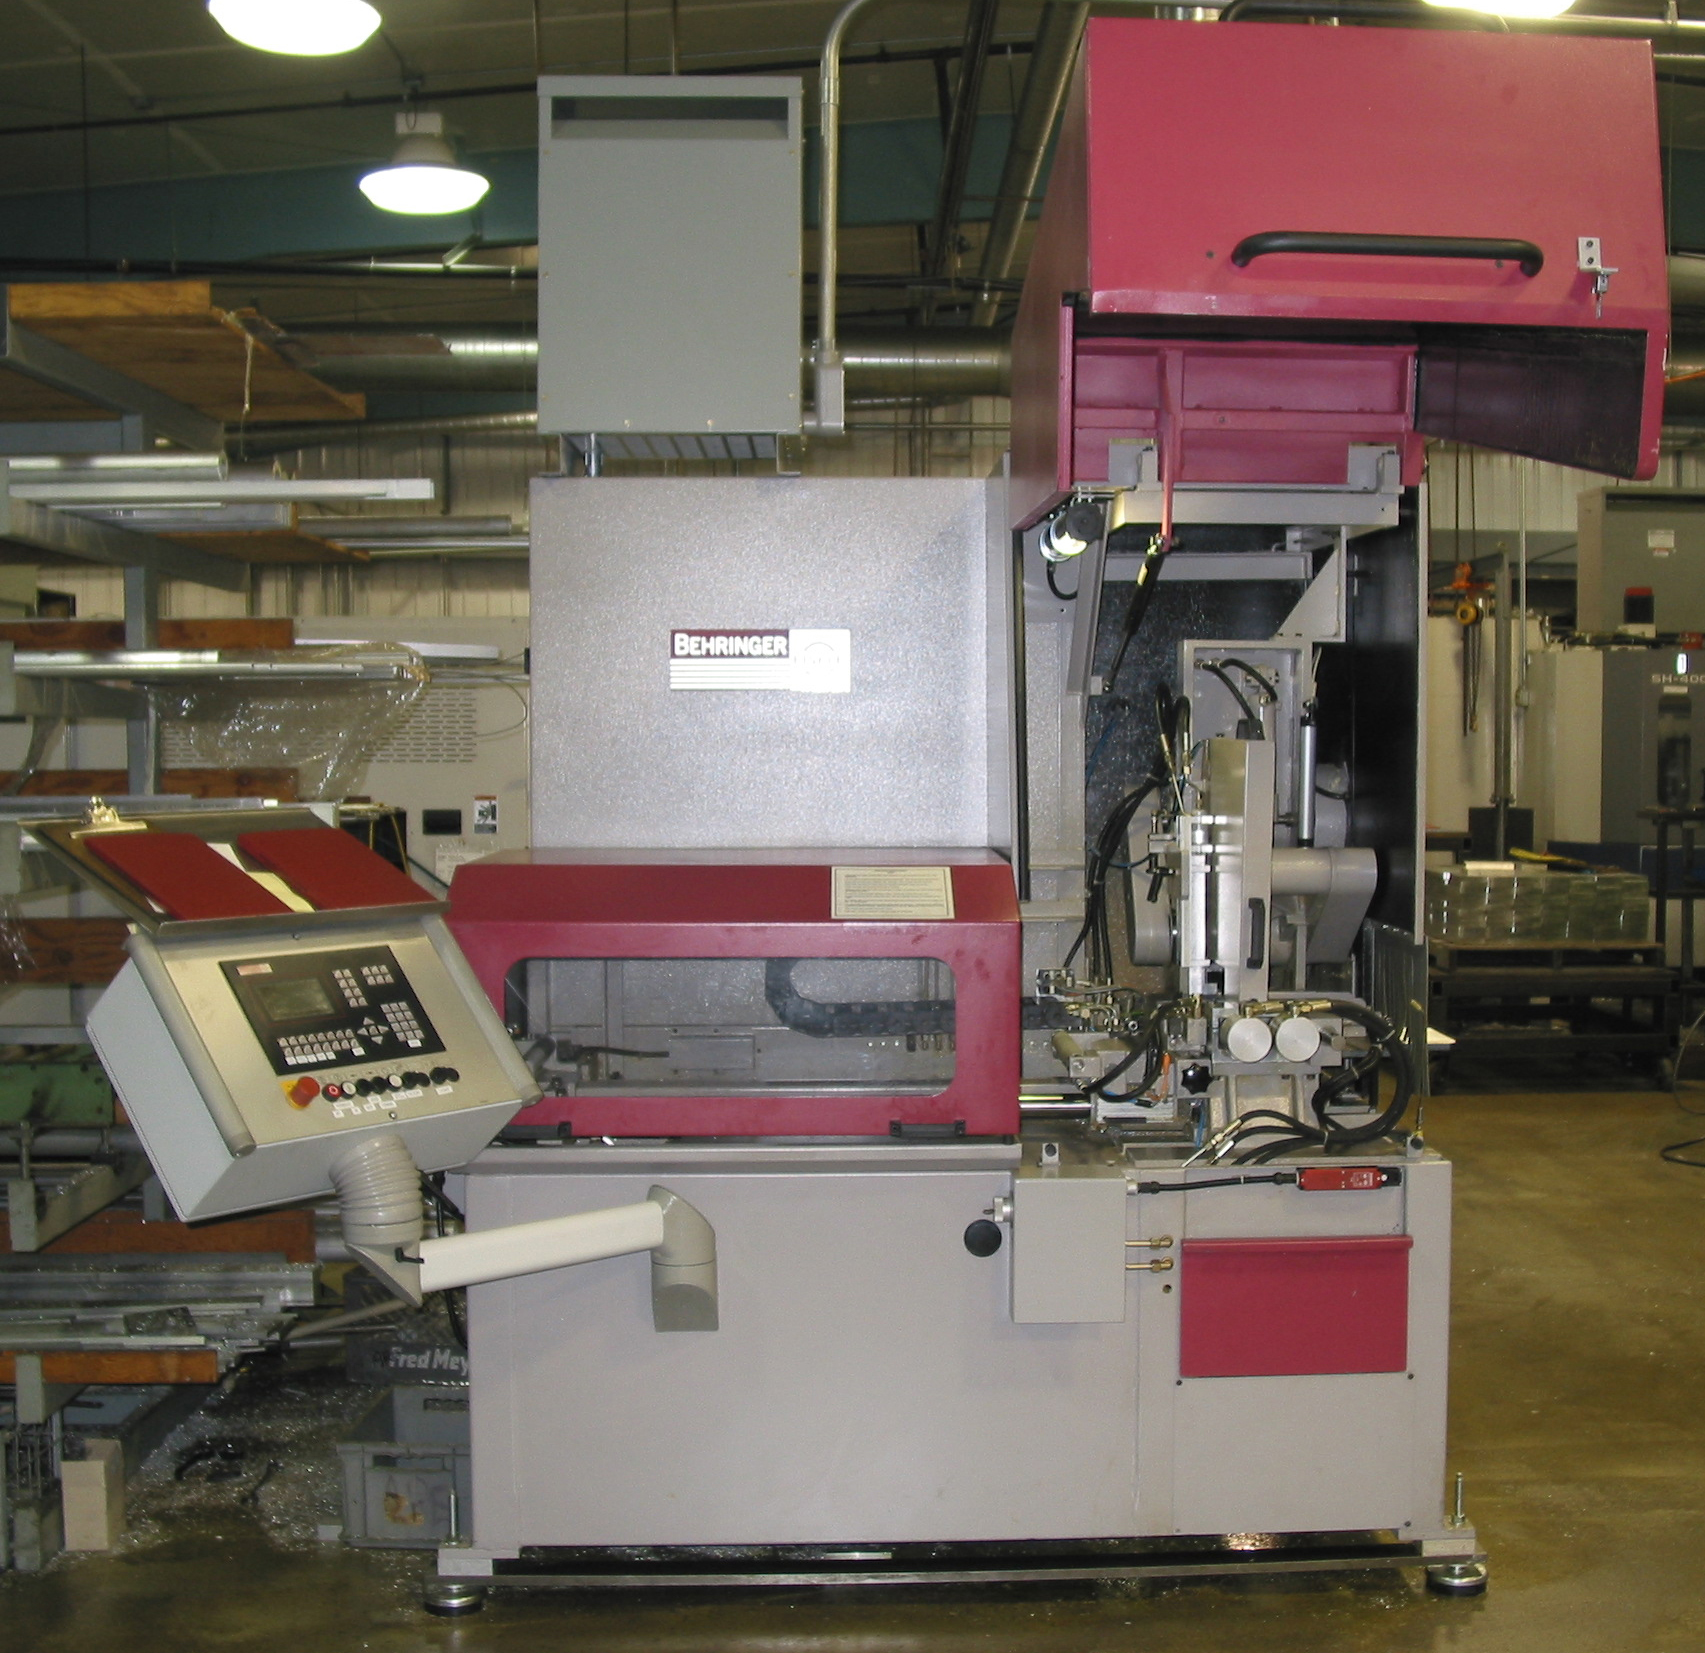 2003 Behringer VAL350 NC 1 Non-Ferrous Cold Saw